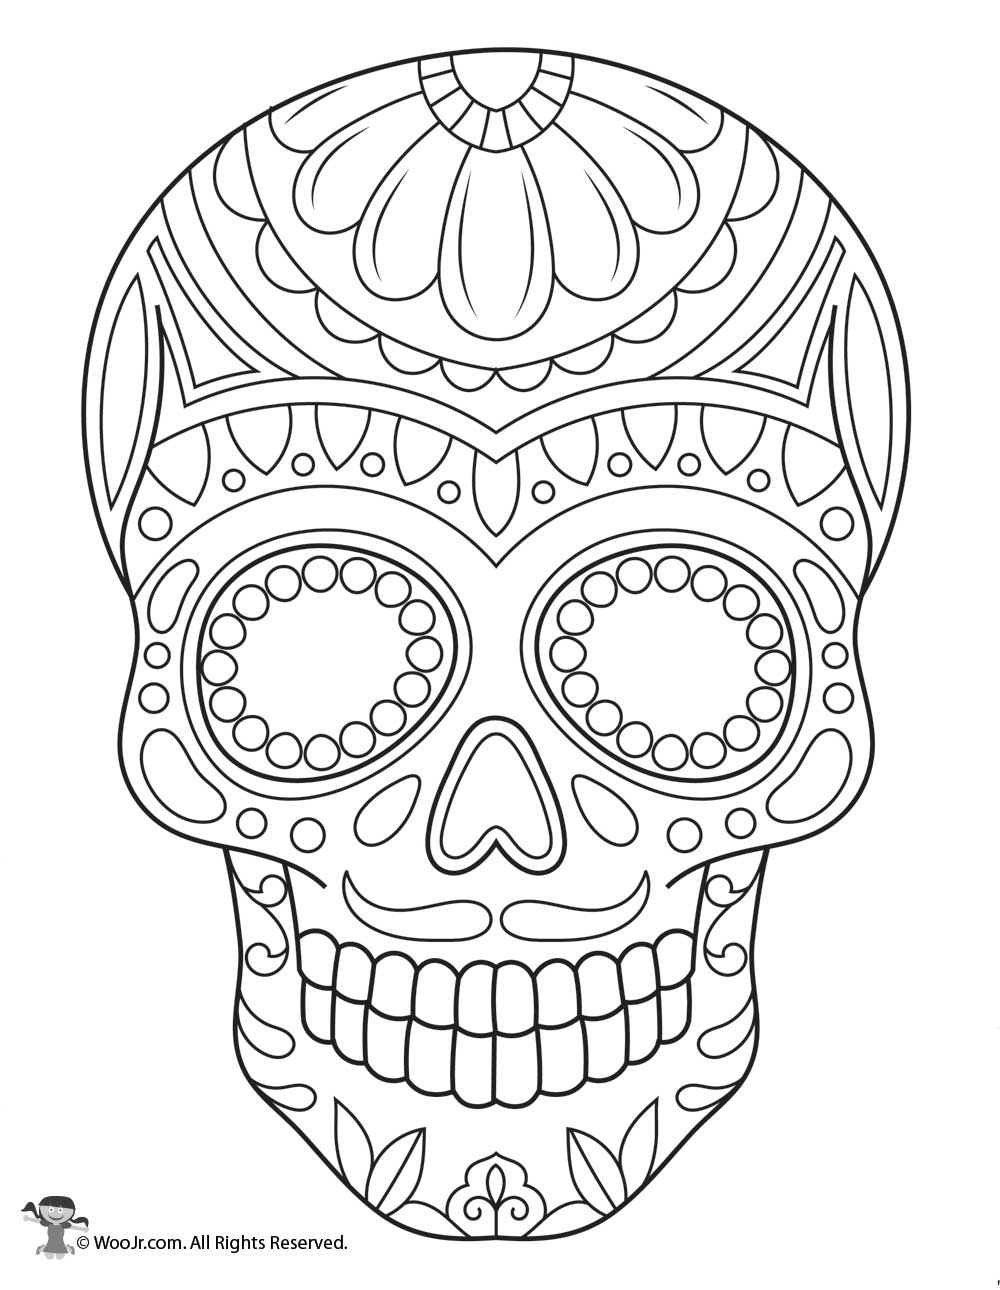 candy skull coloring pages sugar skull coloring page woo jr kids activities pages candy skull coloring